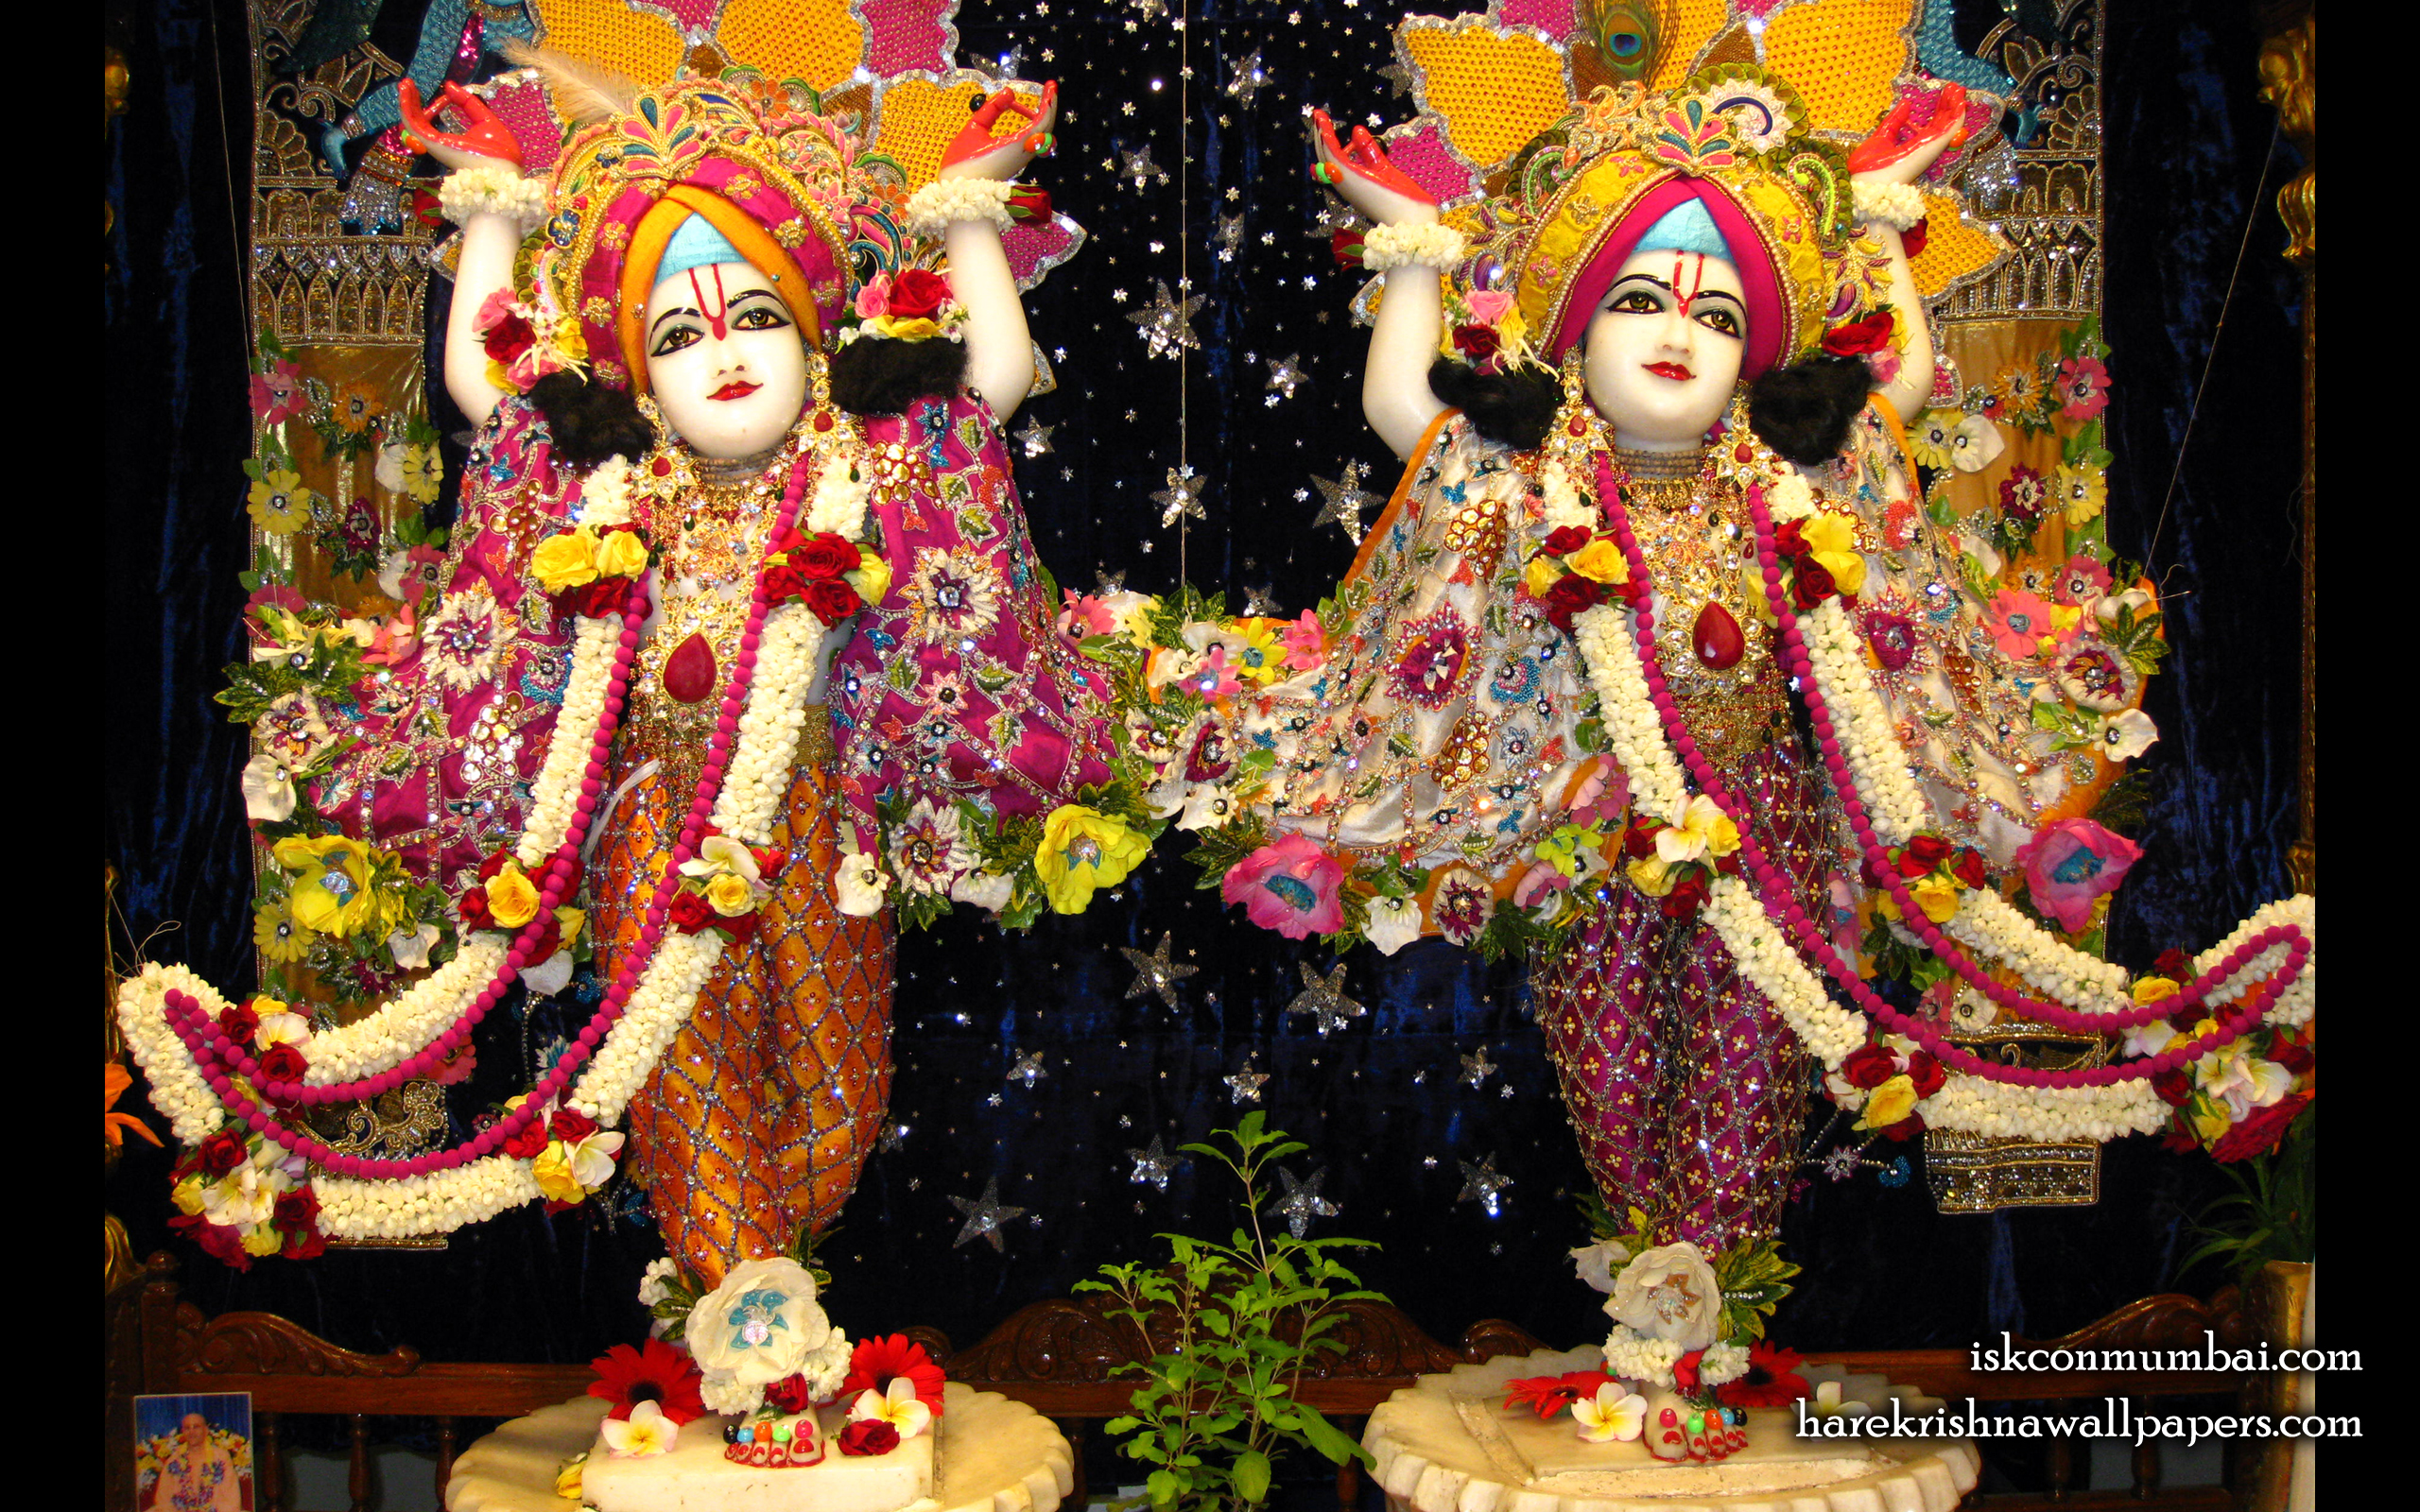 Sri Sri Gaura Nitai Wallpaper (010) Size 2560x1600 Download